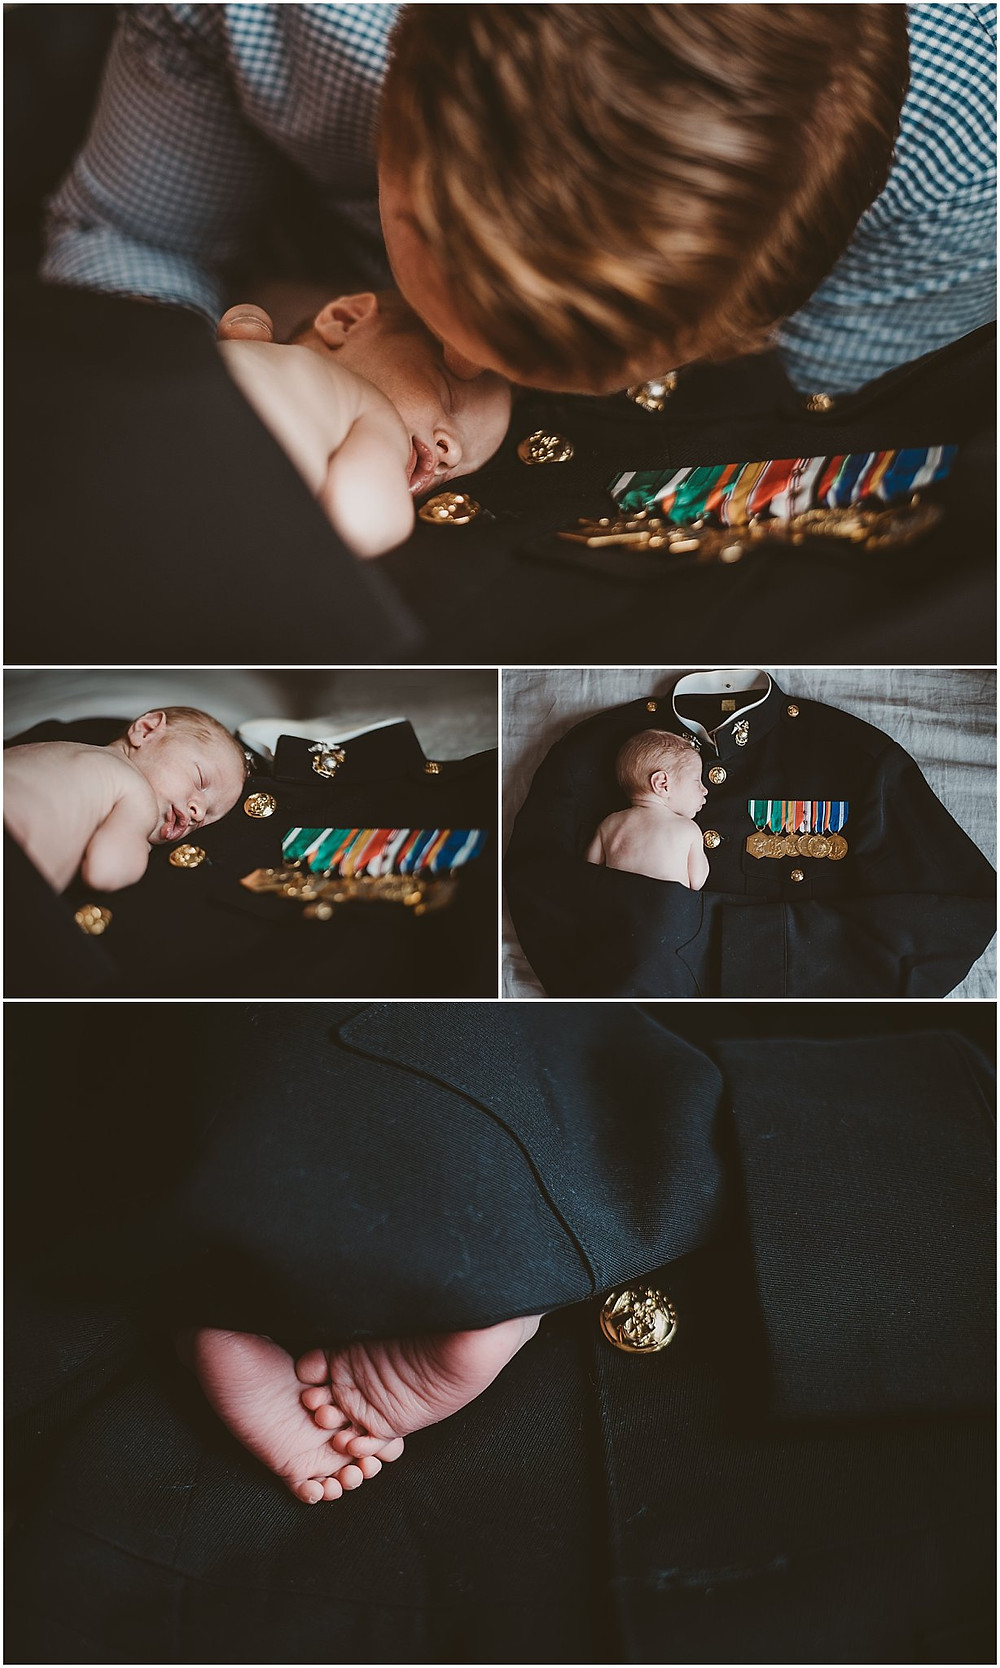 Newborn baby lying on father's marine corp uniform